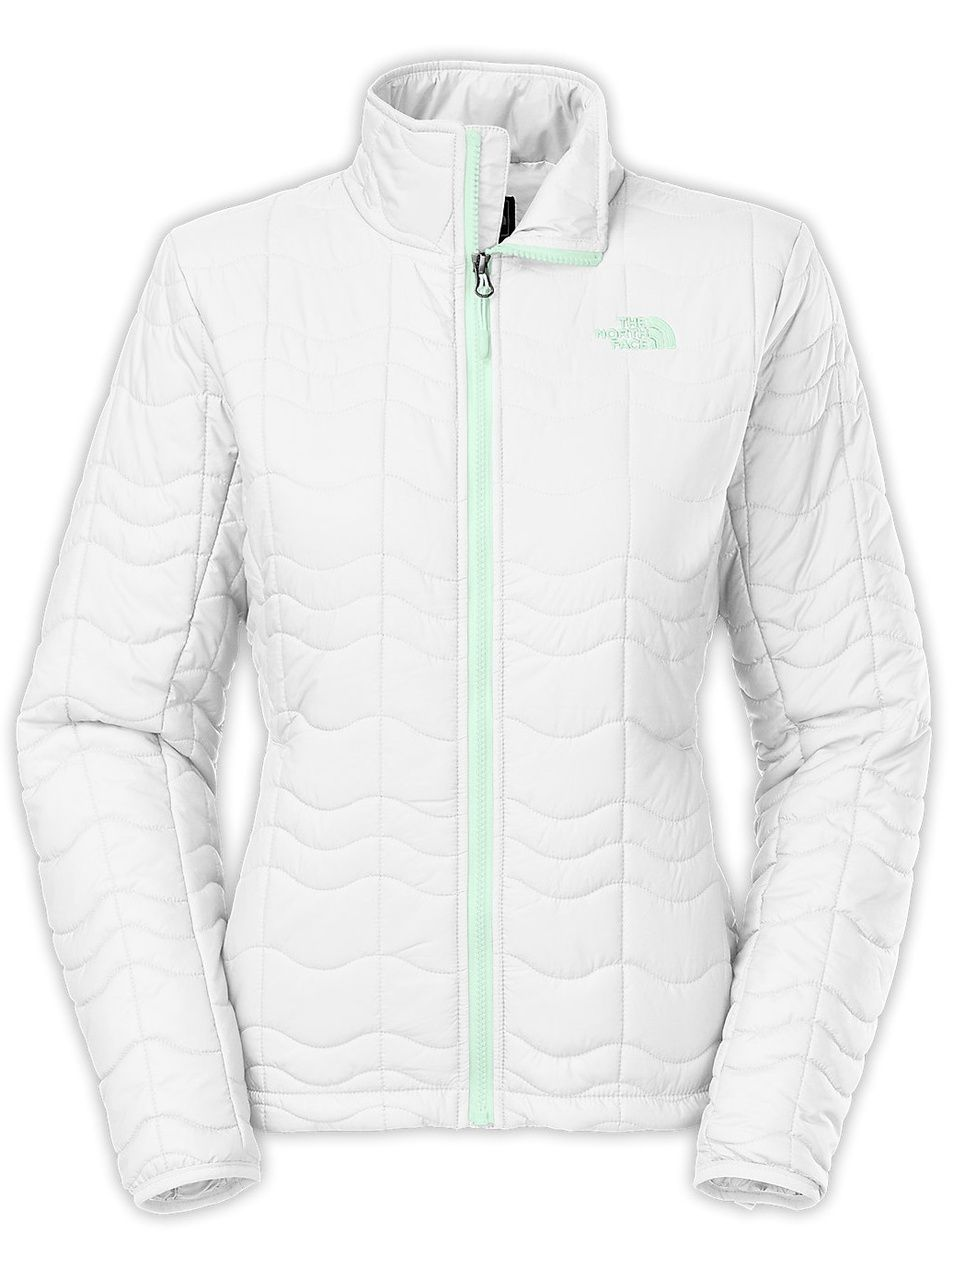 North Face Women S Bombay Jacket In White Jackets Winter Jackets Women Activewear Jackets [ 1280 x 954 Pixel ]